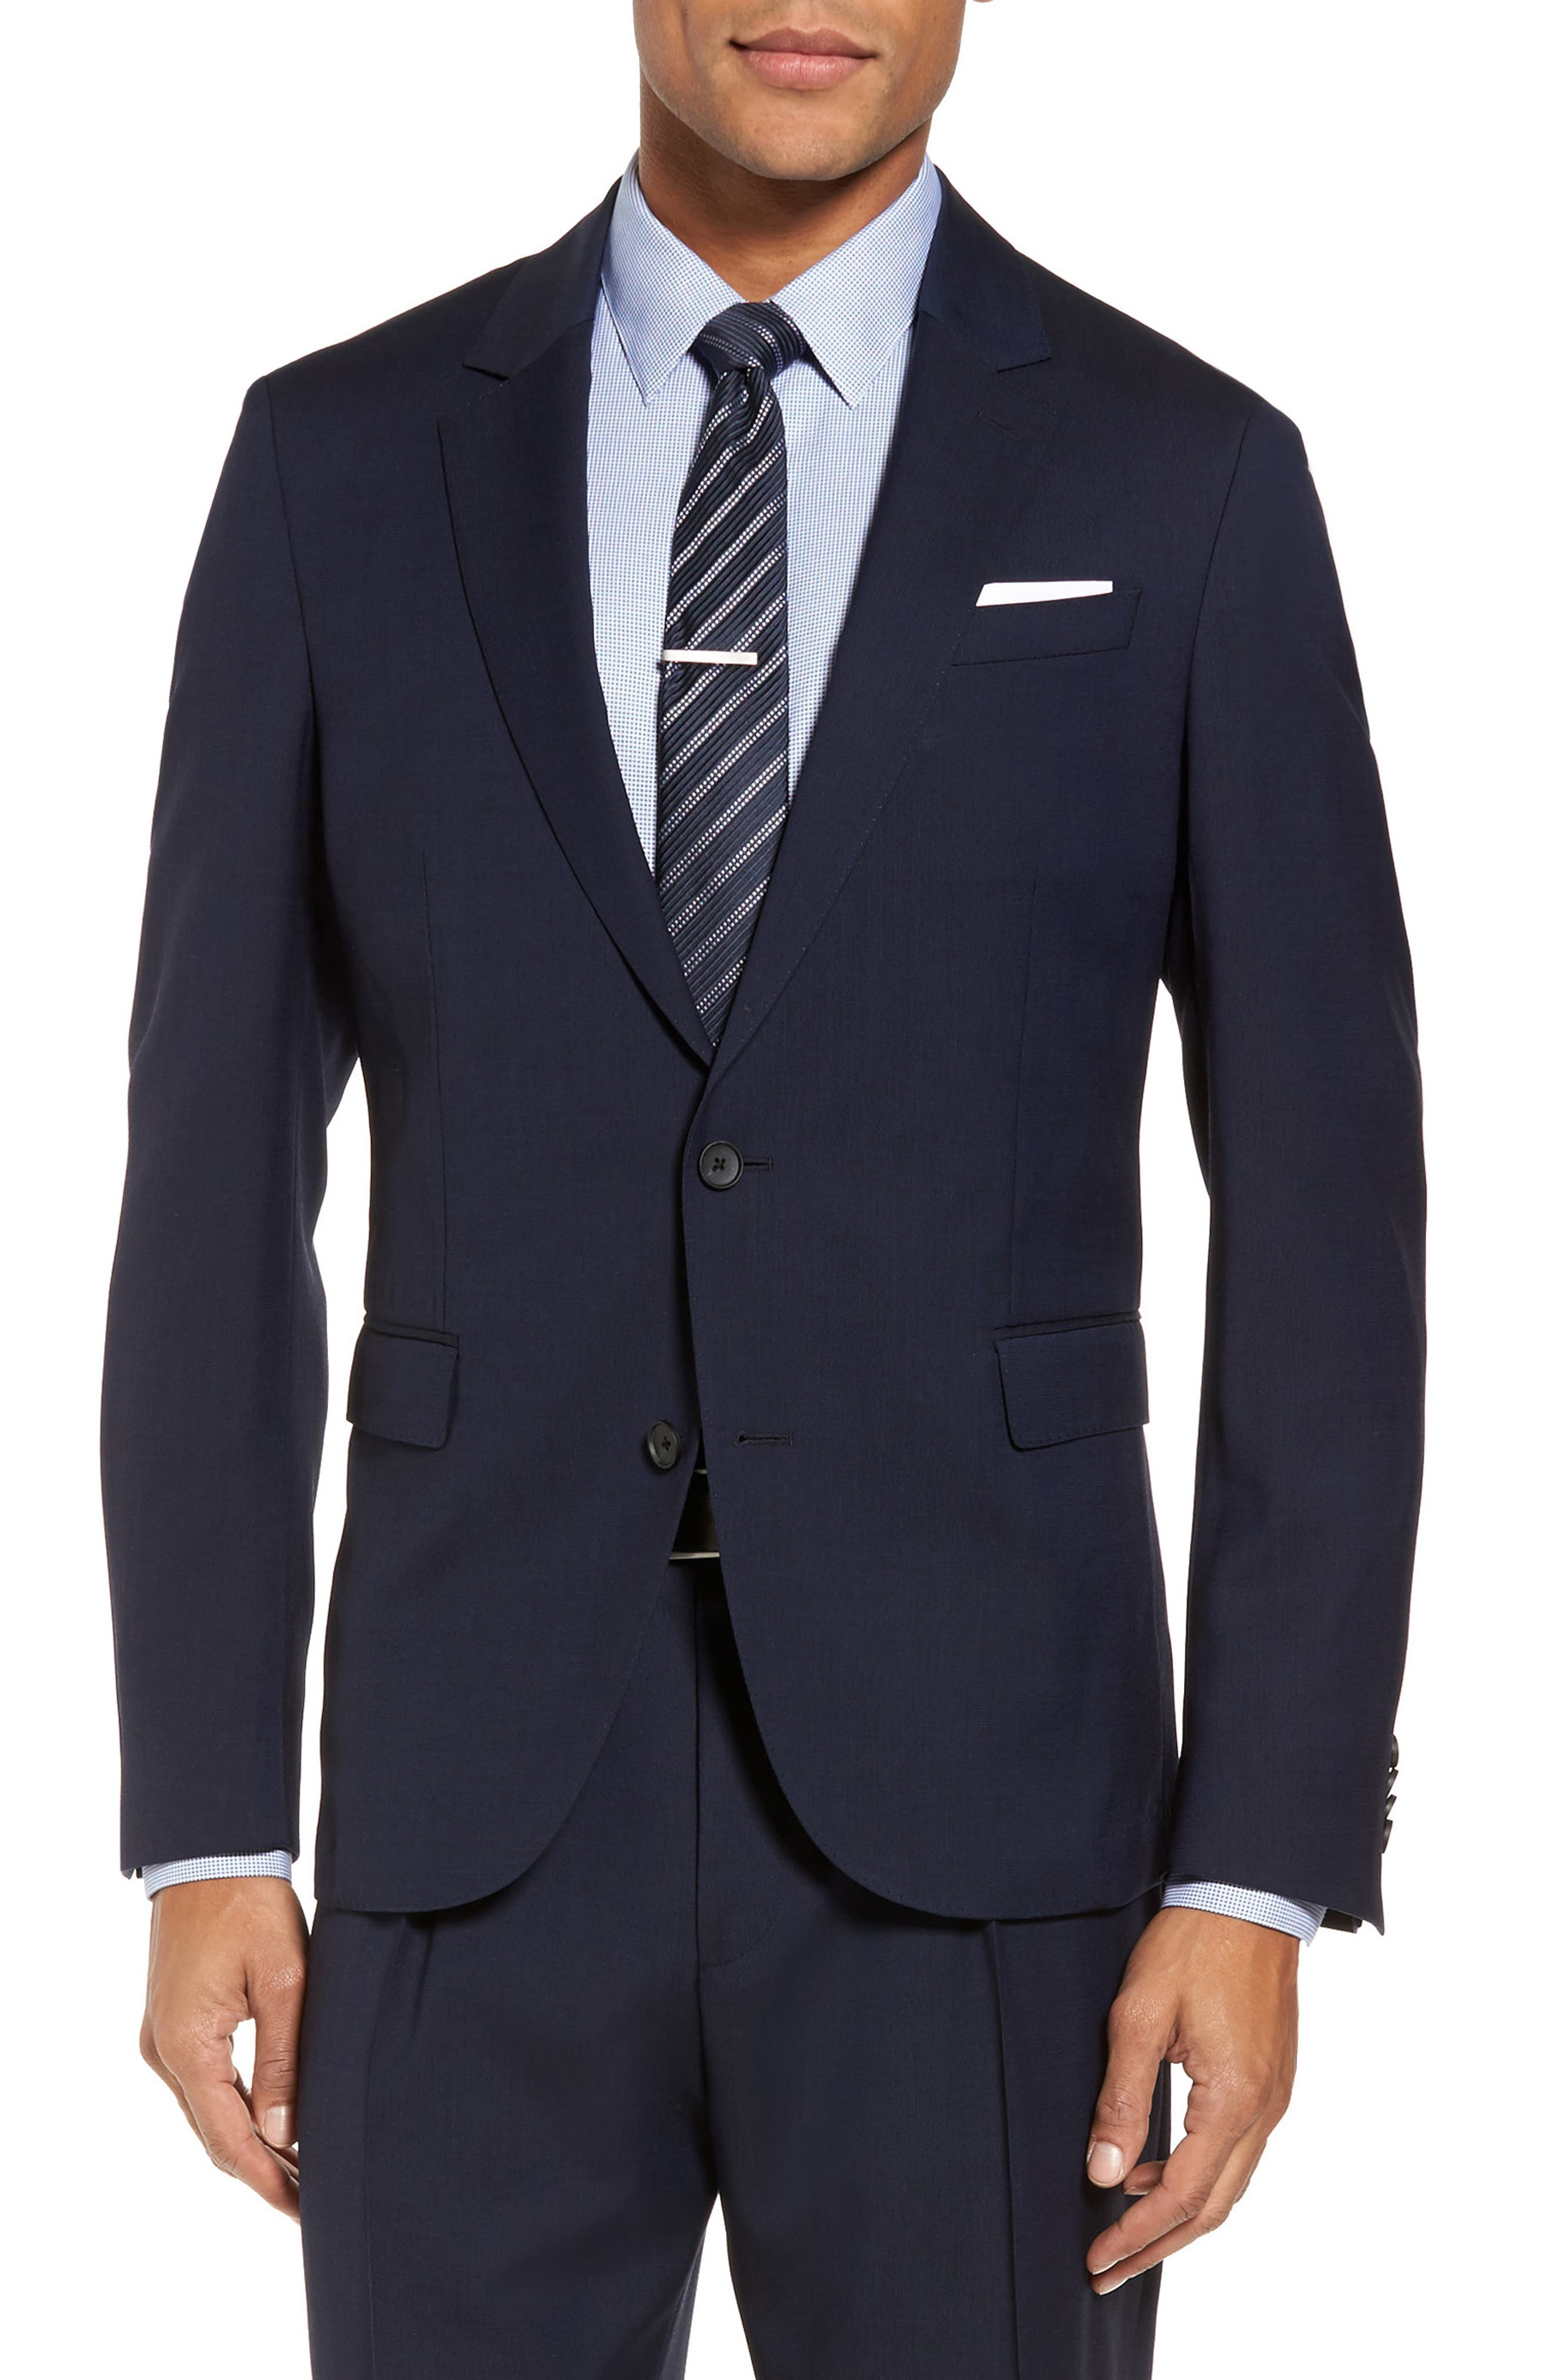 Nylen/Perry Trim Fit Solid Wool Suit,                             Alternate thumbnail 8, color,